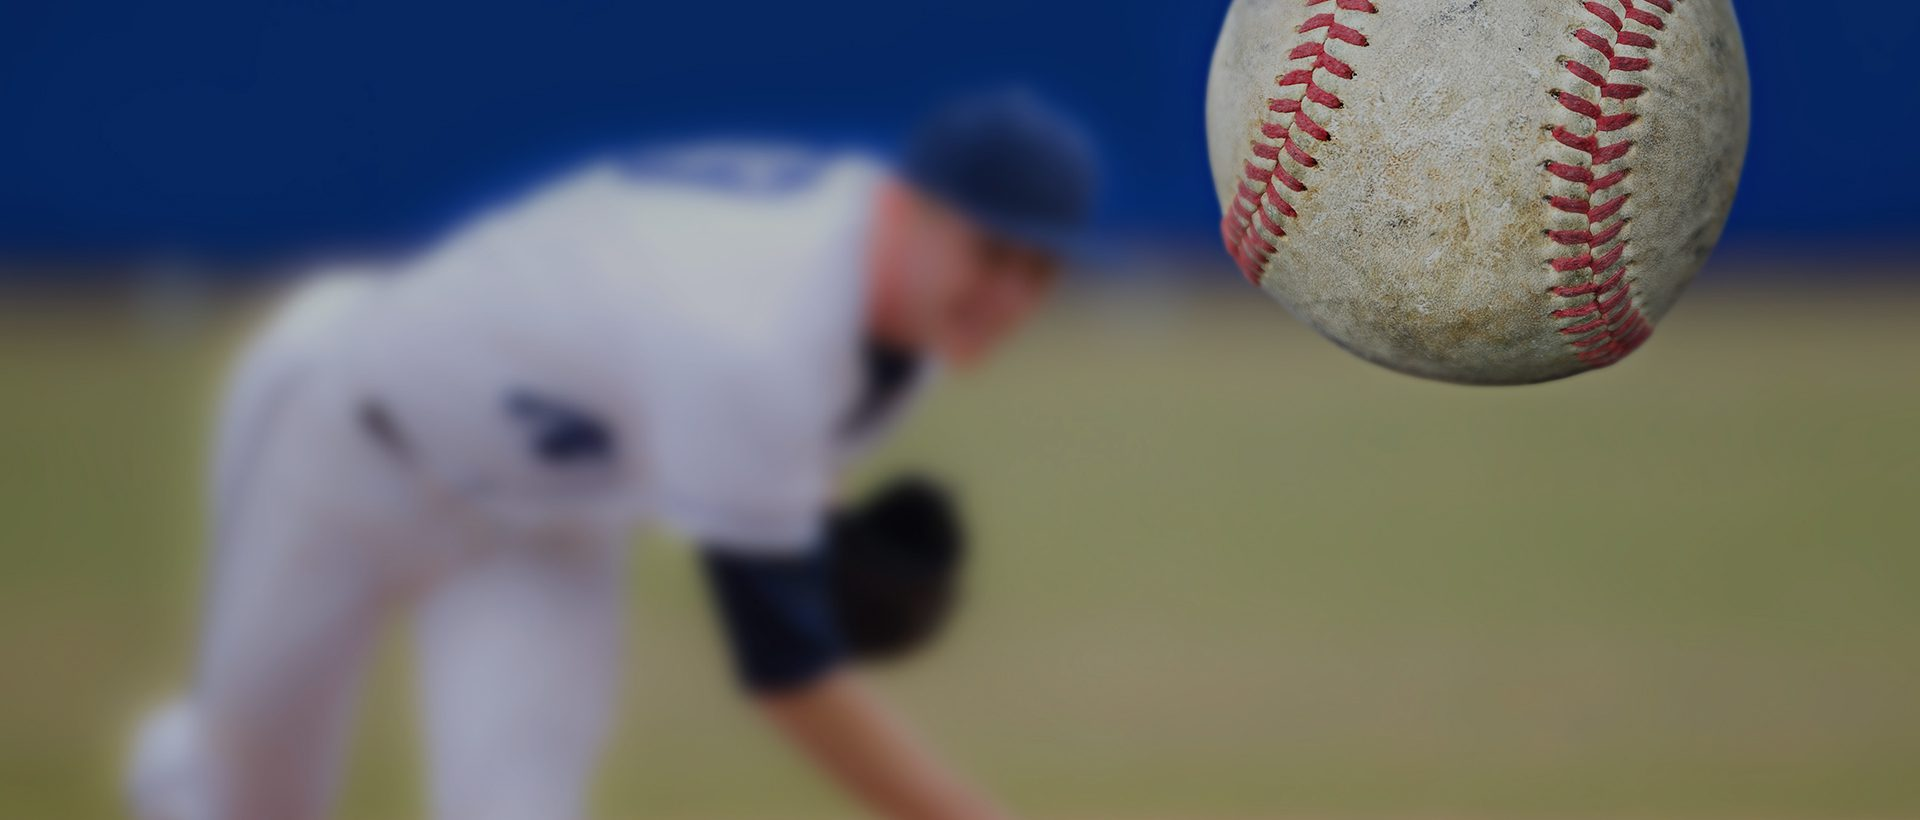 Provide radiology coverage to orthopedic and sports medicine practices